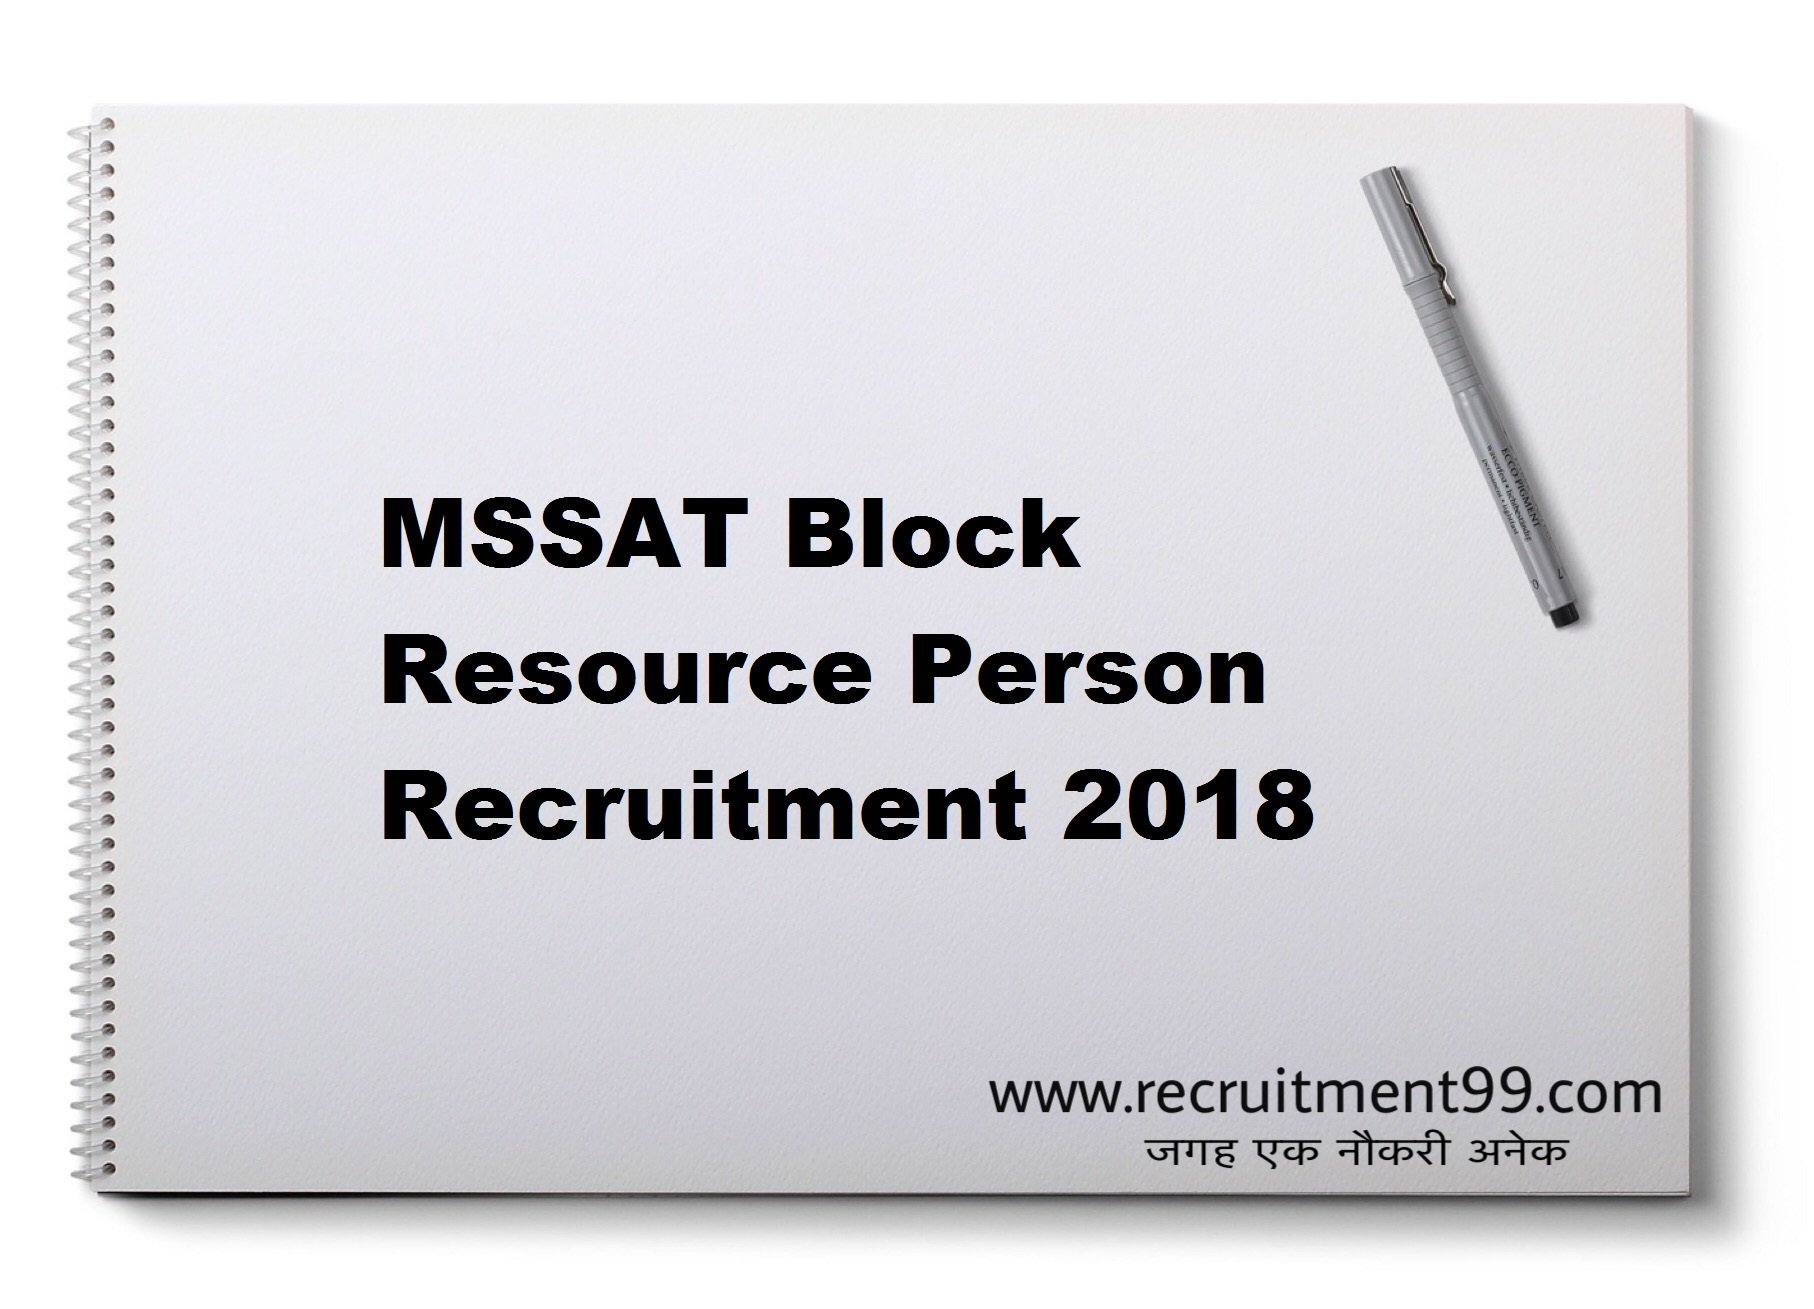 MSSAT Block Resource Person Recruitment Admit Card Result 2018